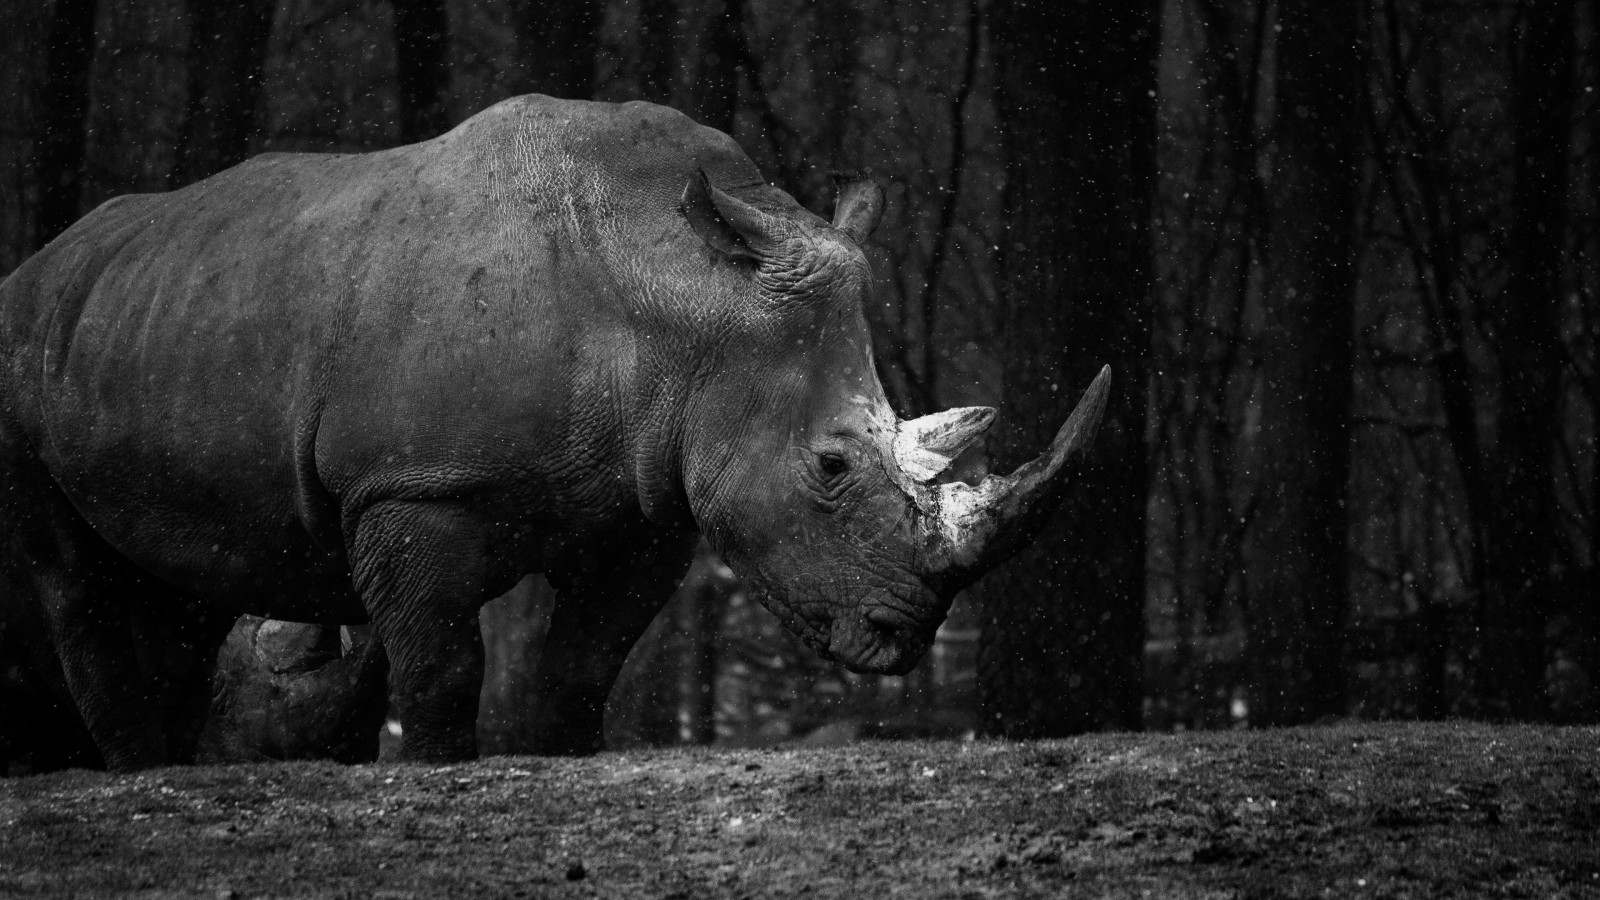 Rhino at zoo wallpaper 1600x900